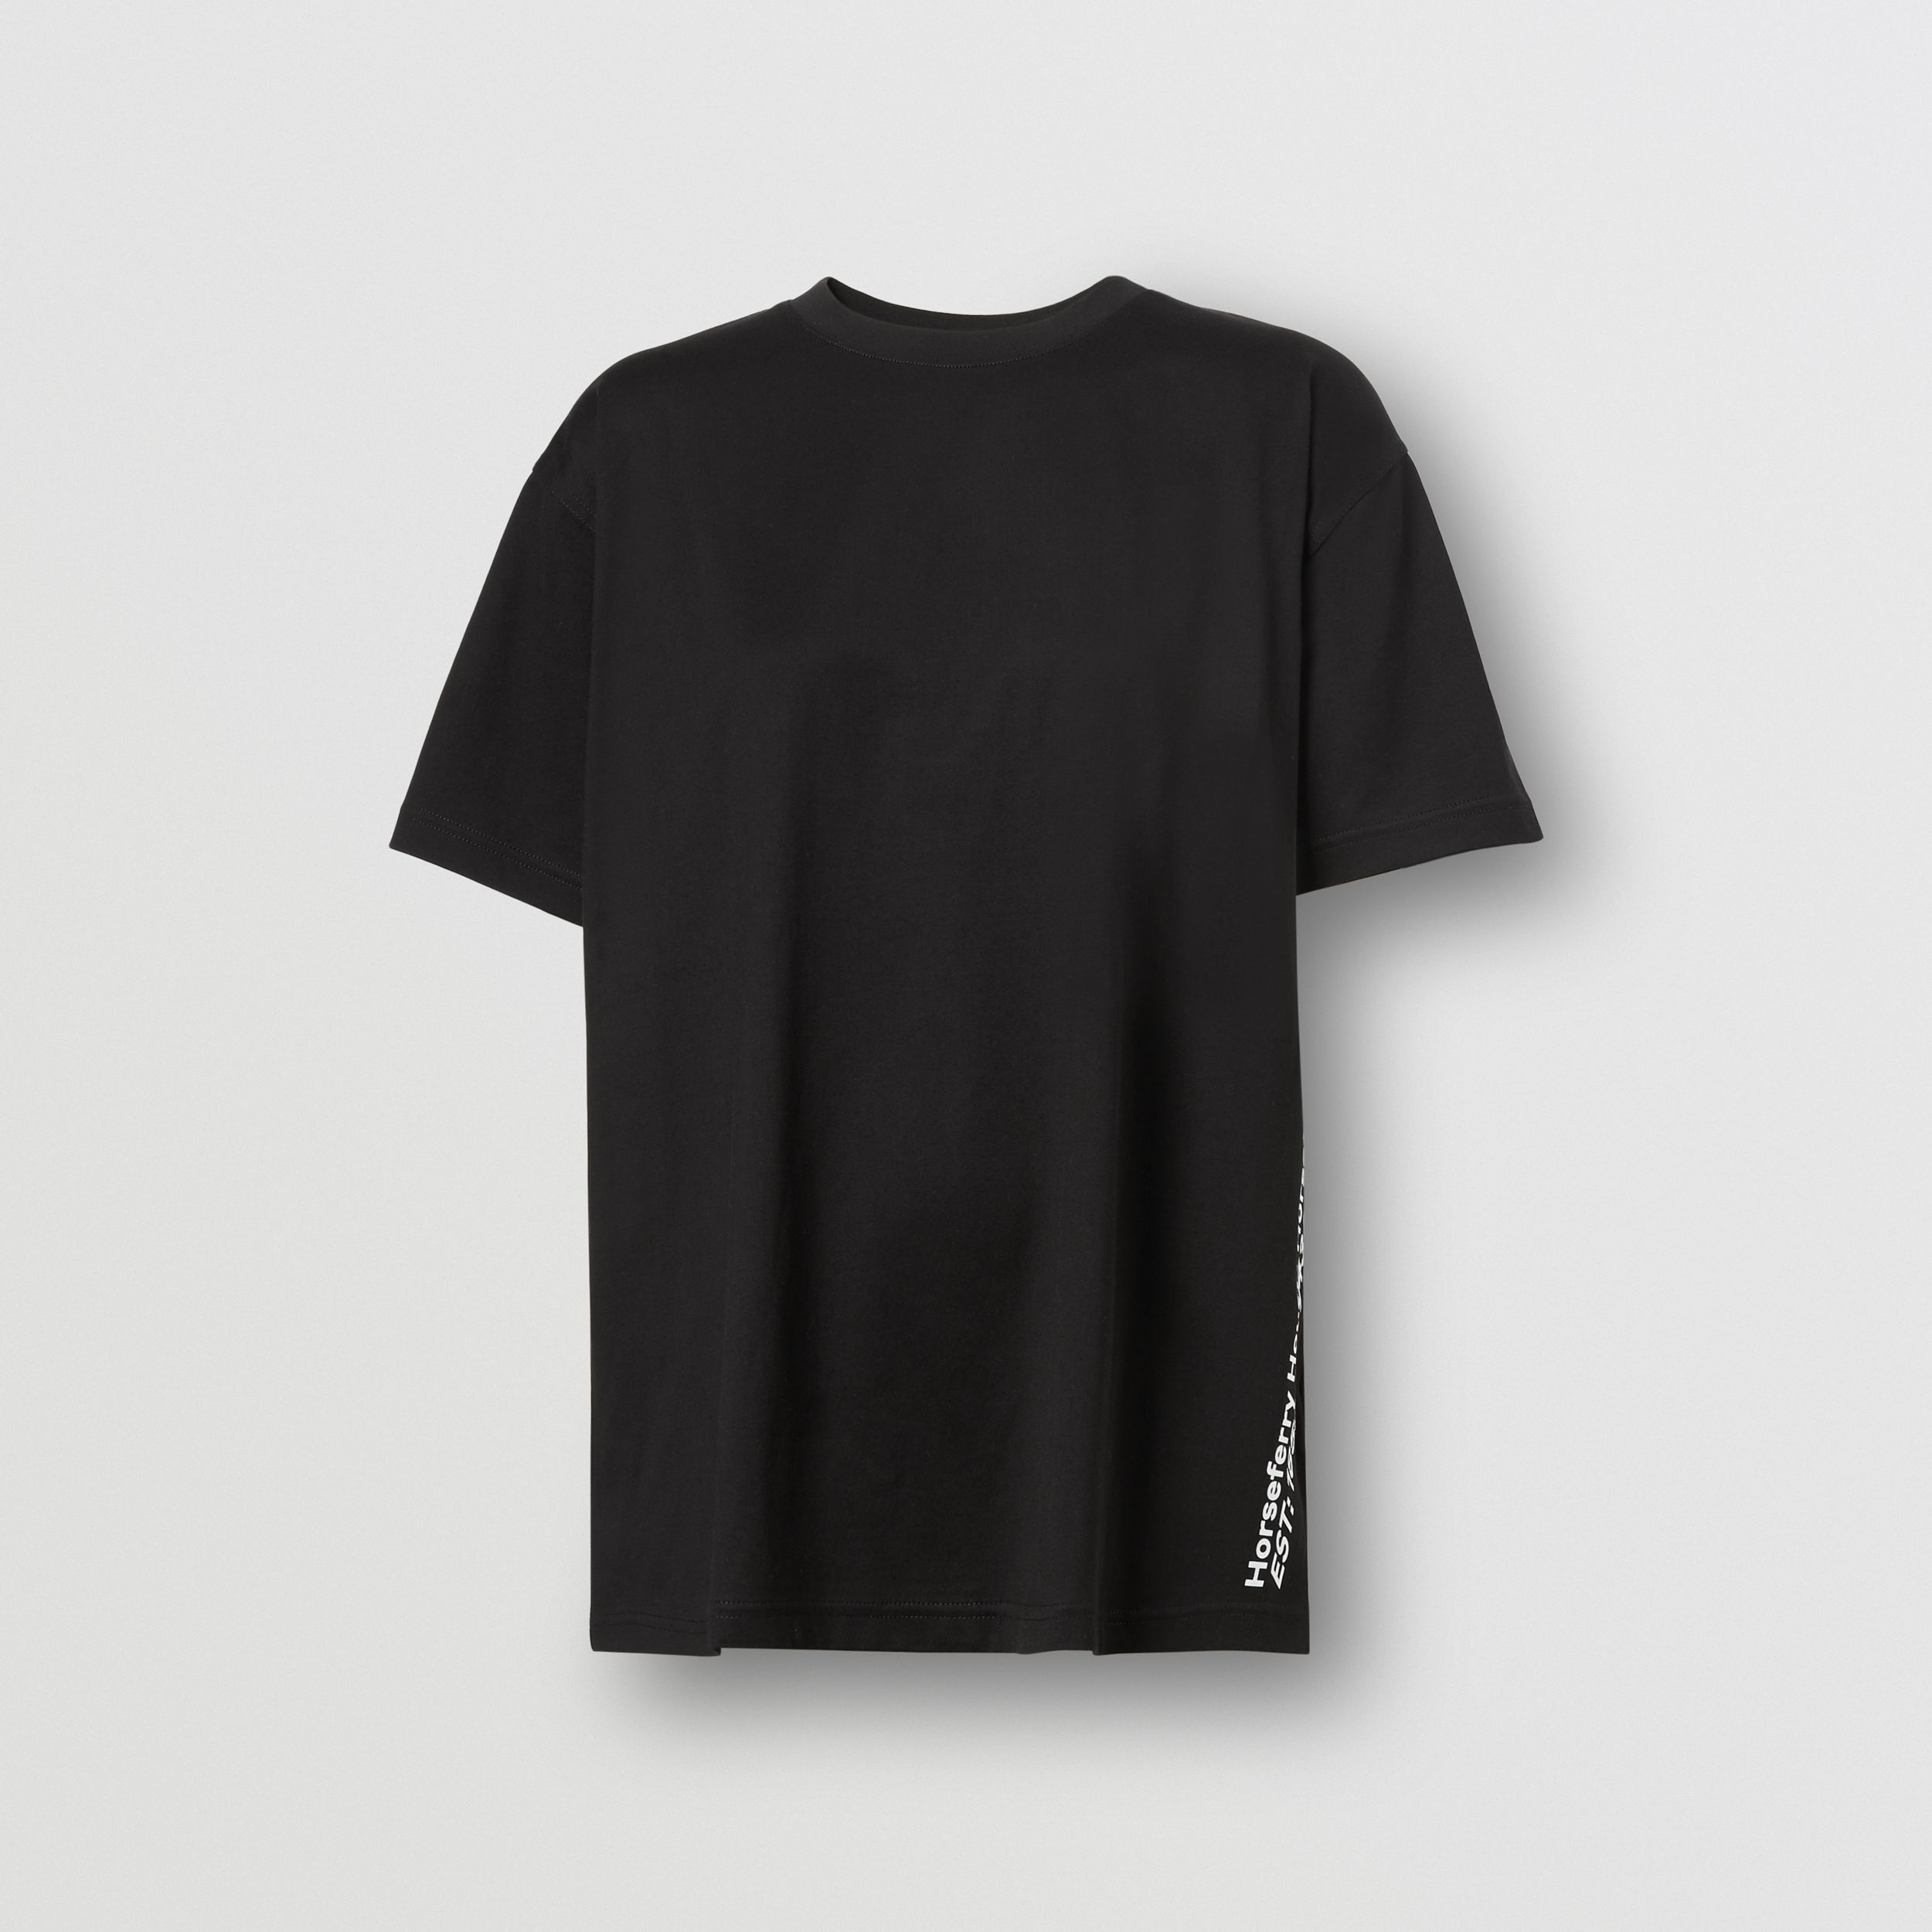 Coordinates Print Cotton Oversized T-shirt in Black - Women | Burberry United Kingdom - 4